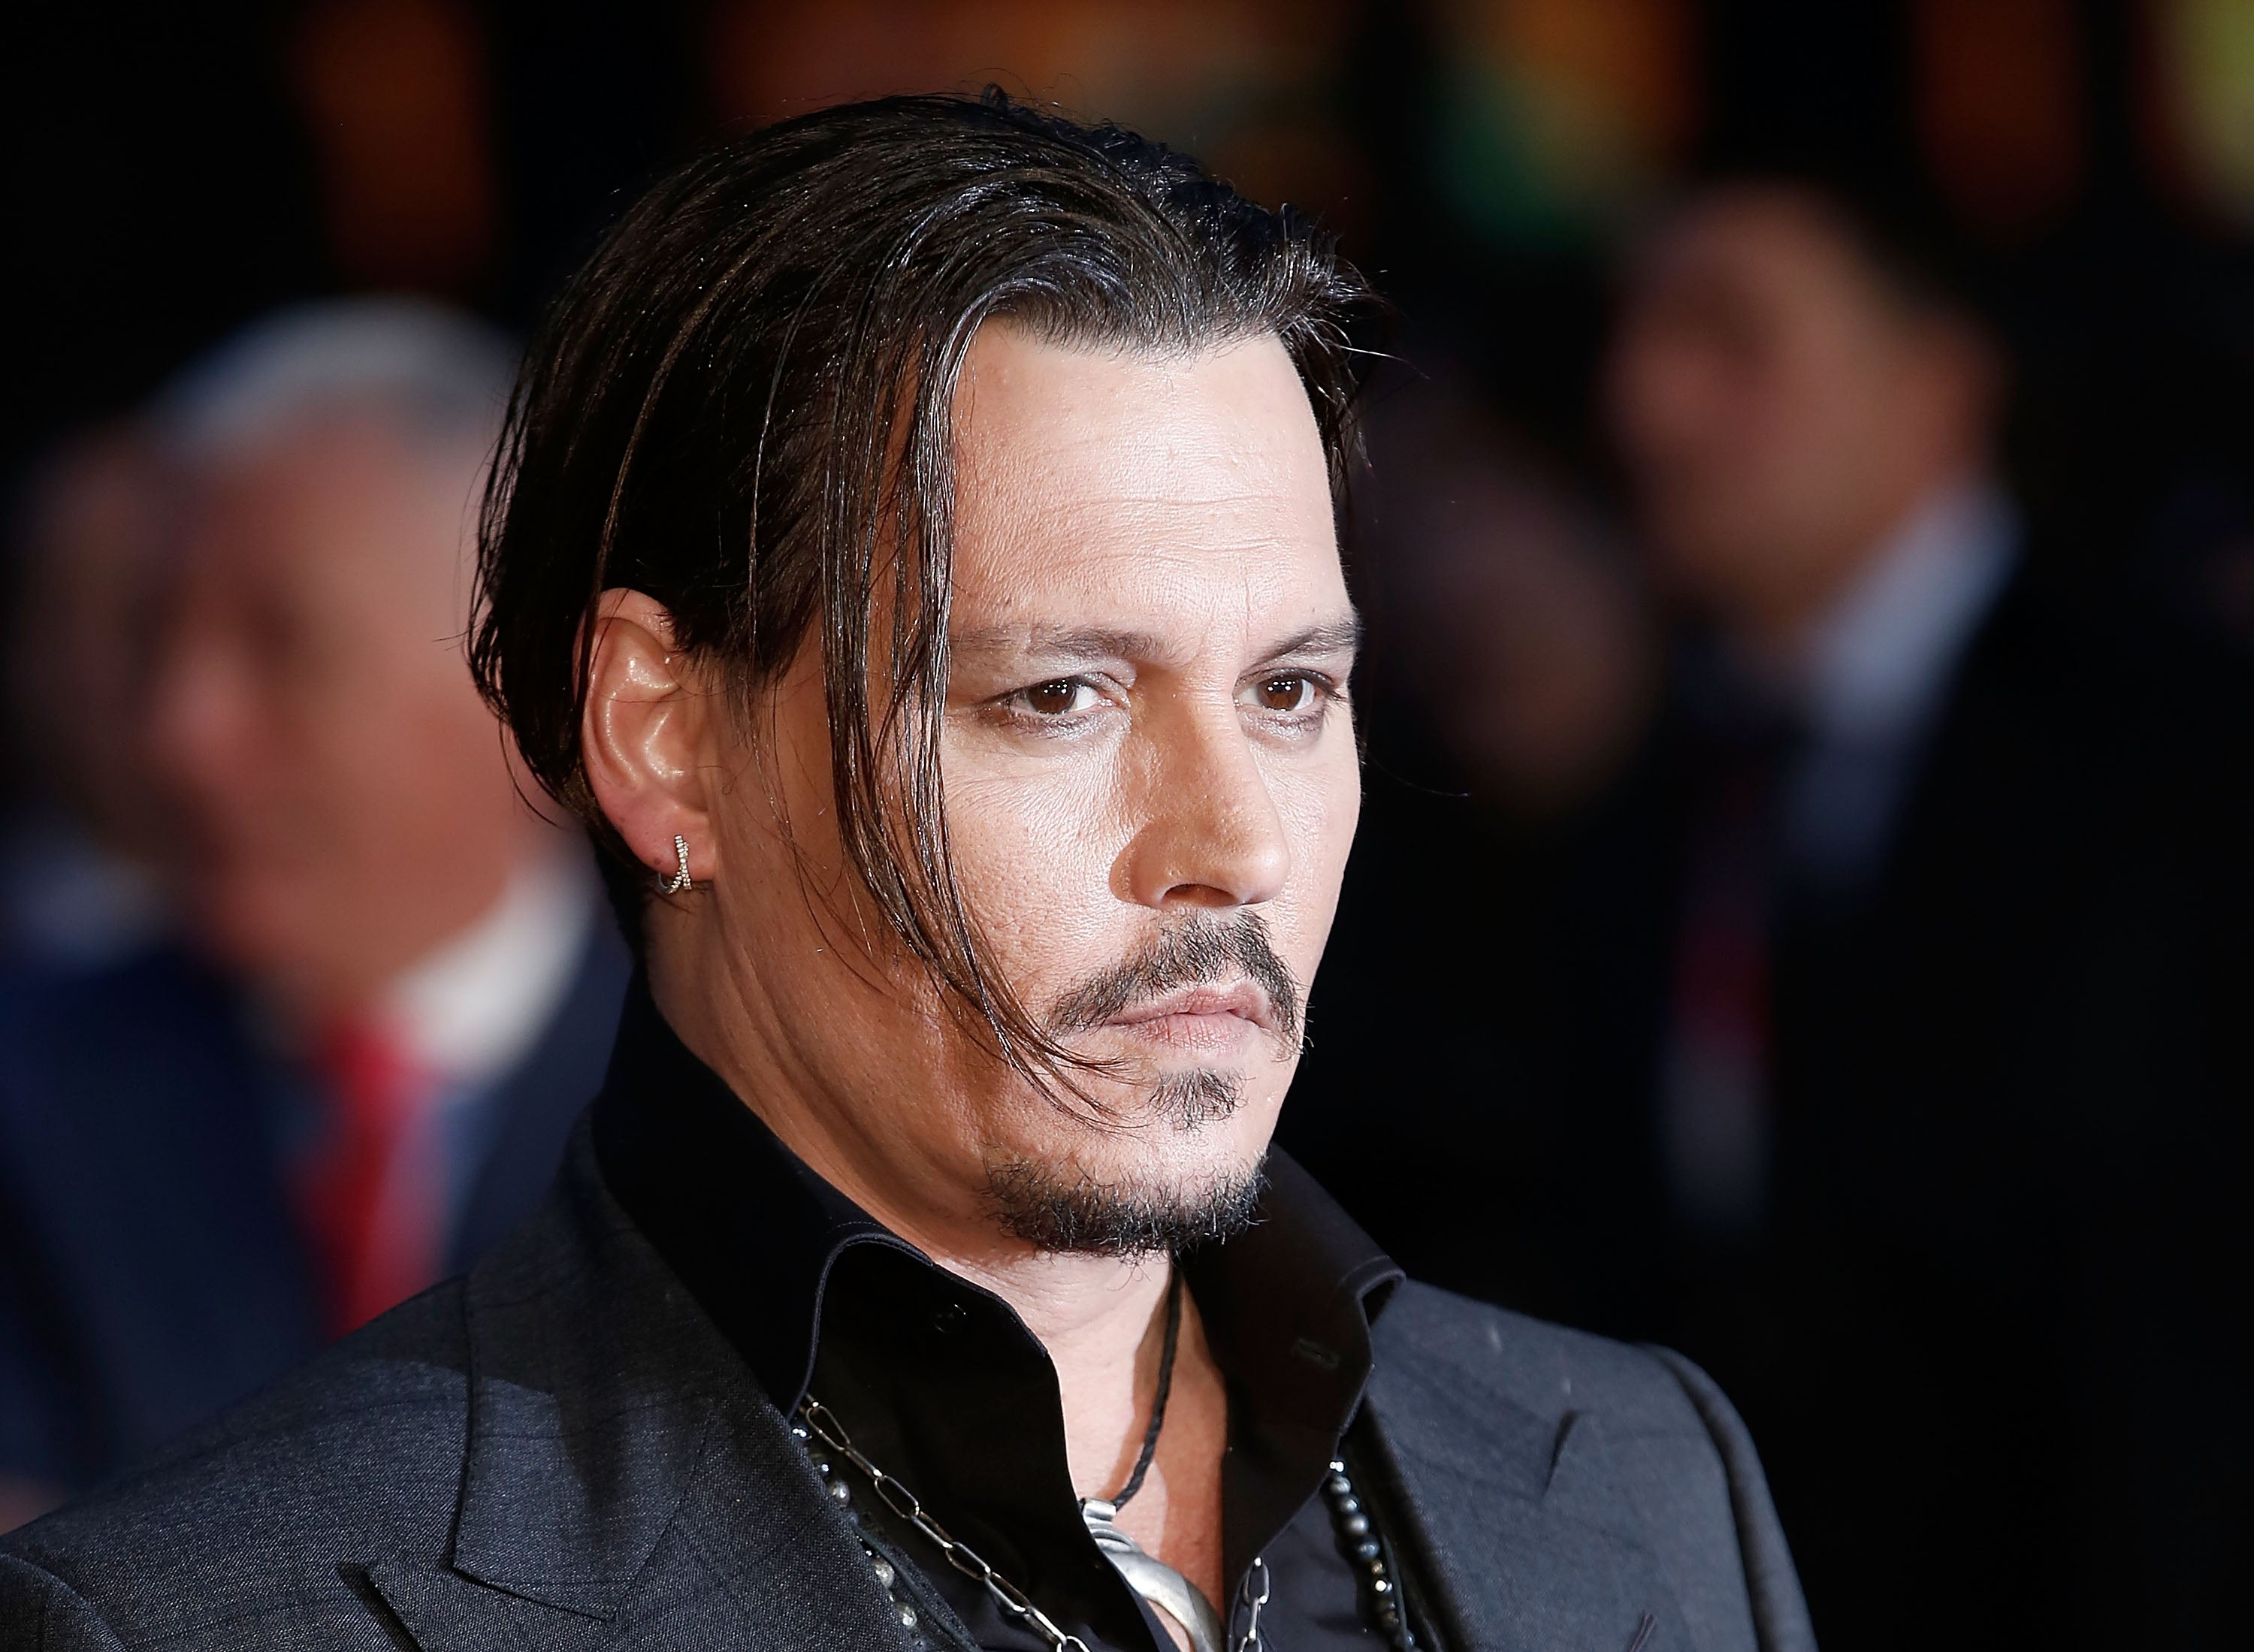 Johnny Depp and Vanessa Paradis' son suffering 'serious